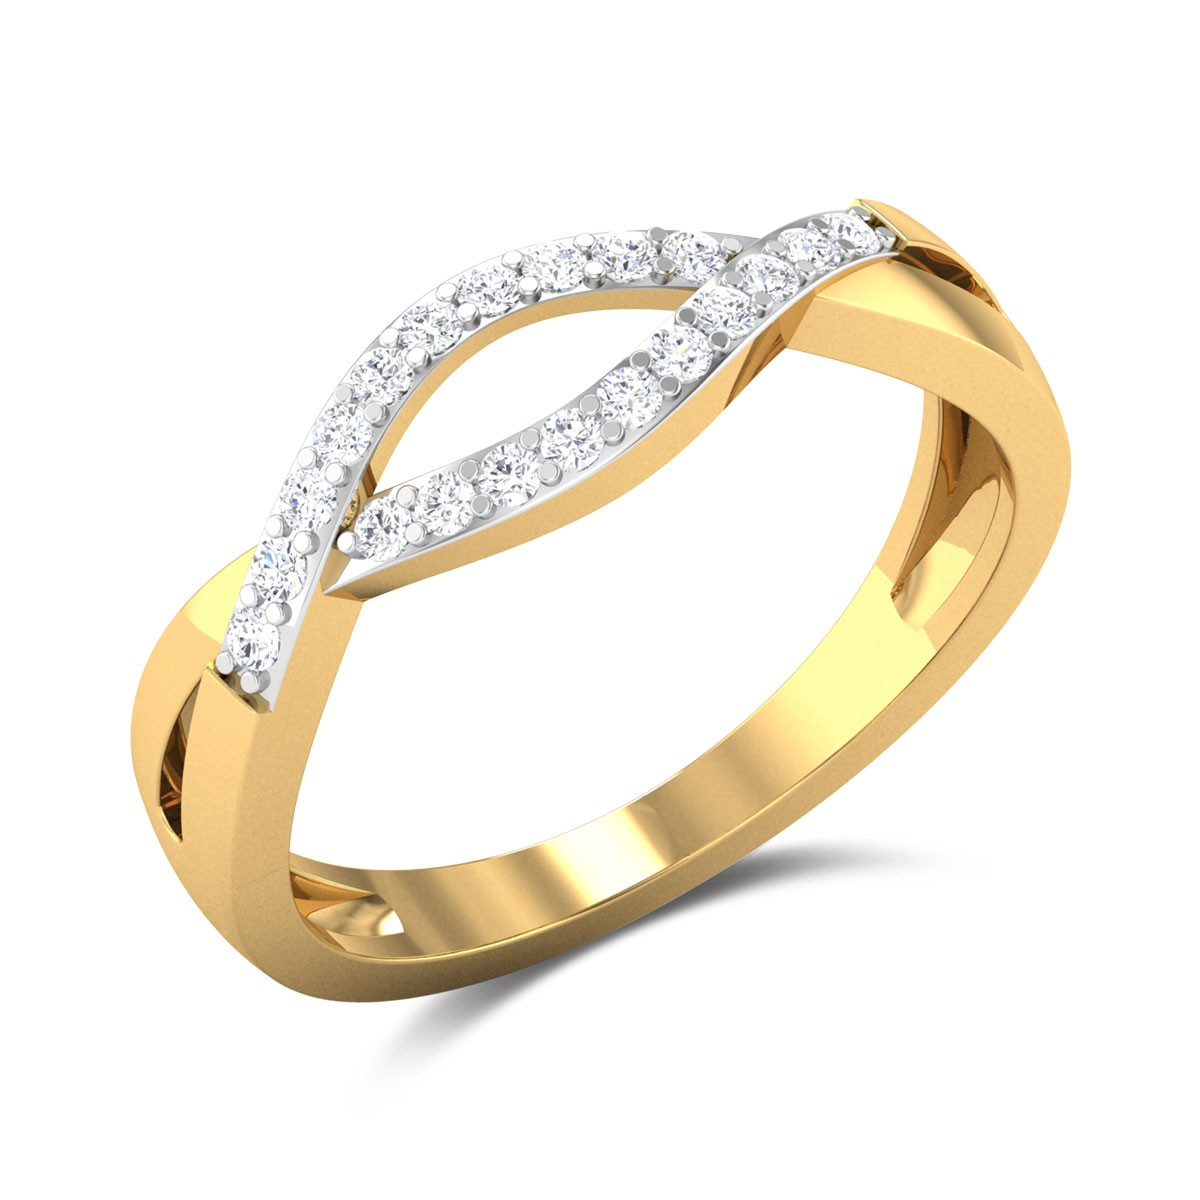 Teresa Diamond Ring